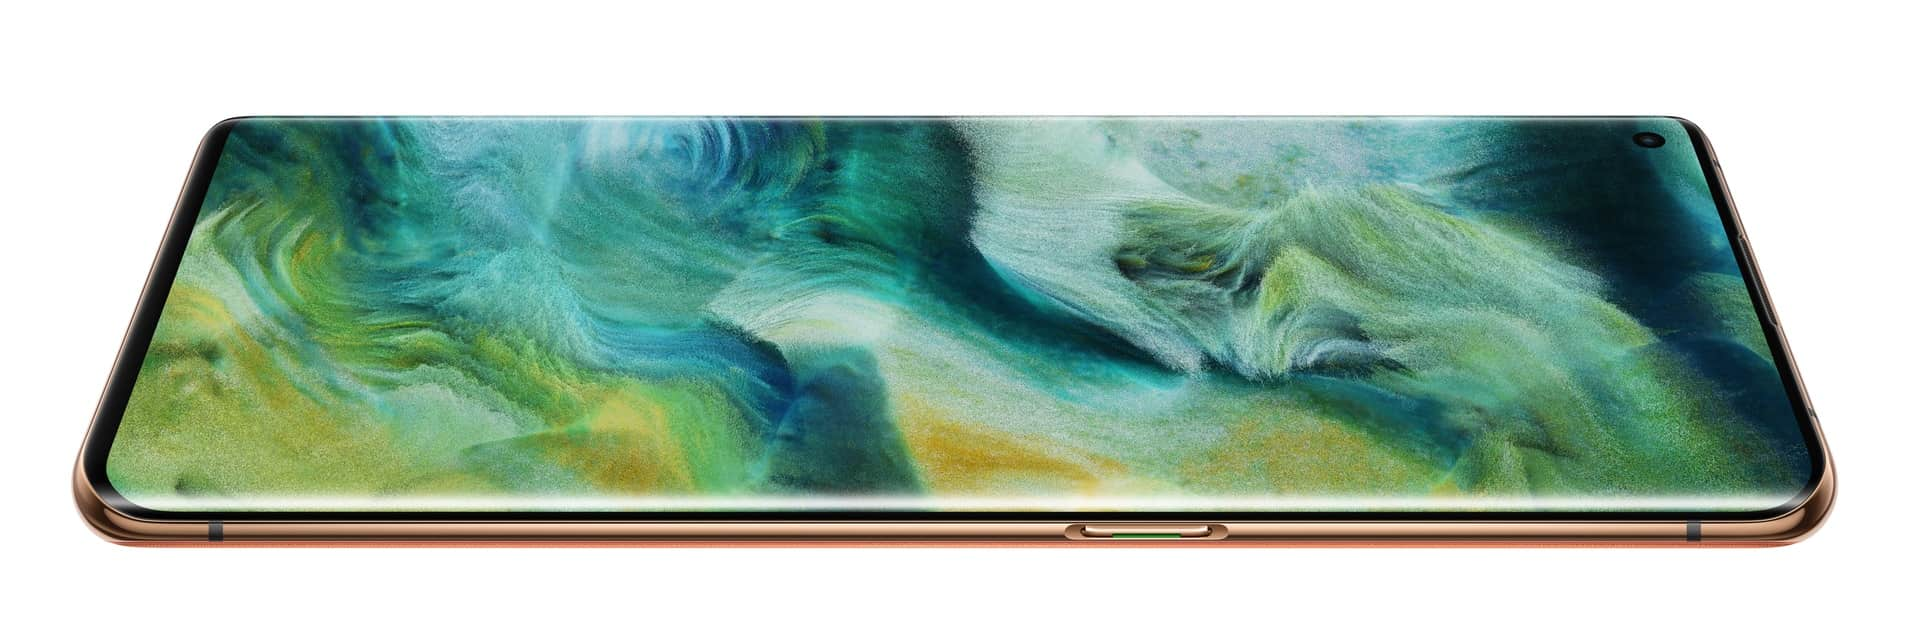 OPPO Find X2 Pro render front Vegan Leather 1